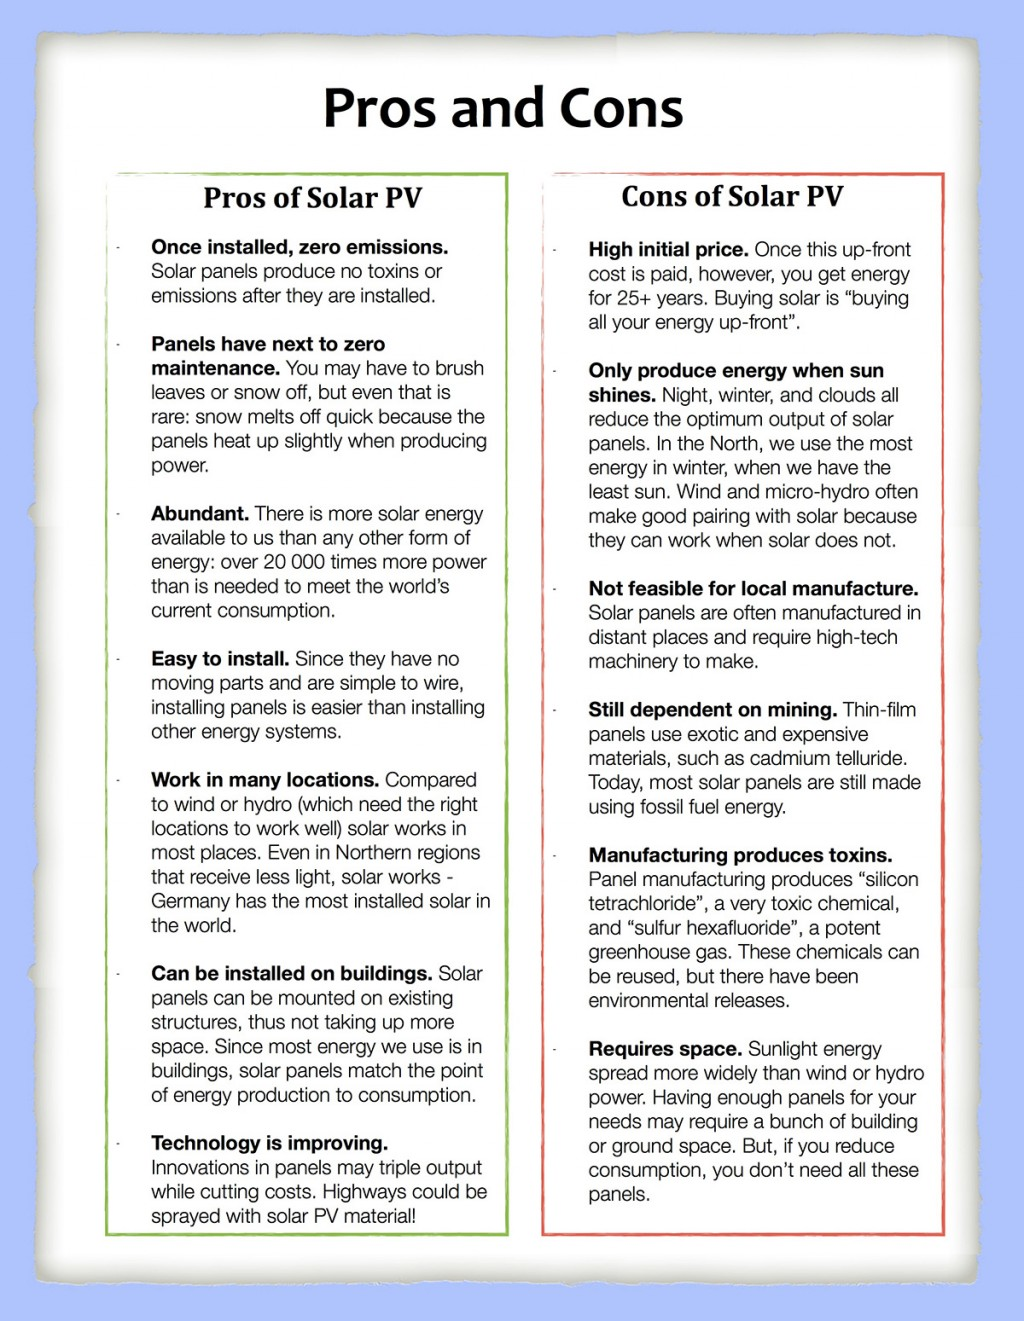 006 Solarposter6 Essay Example Writing Pros And Fascinating Cons Explain How To Write An About The Of A Job Large